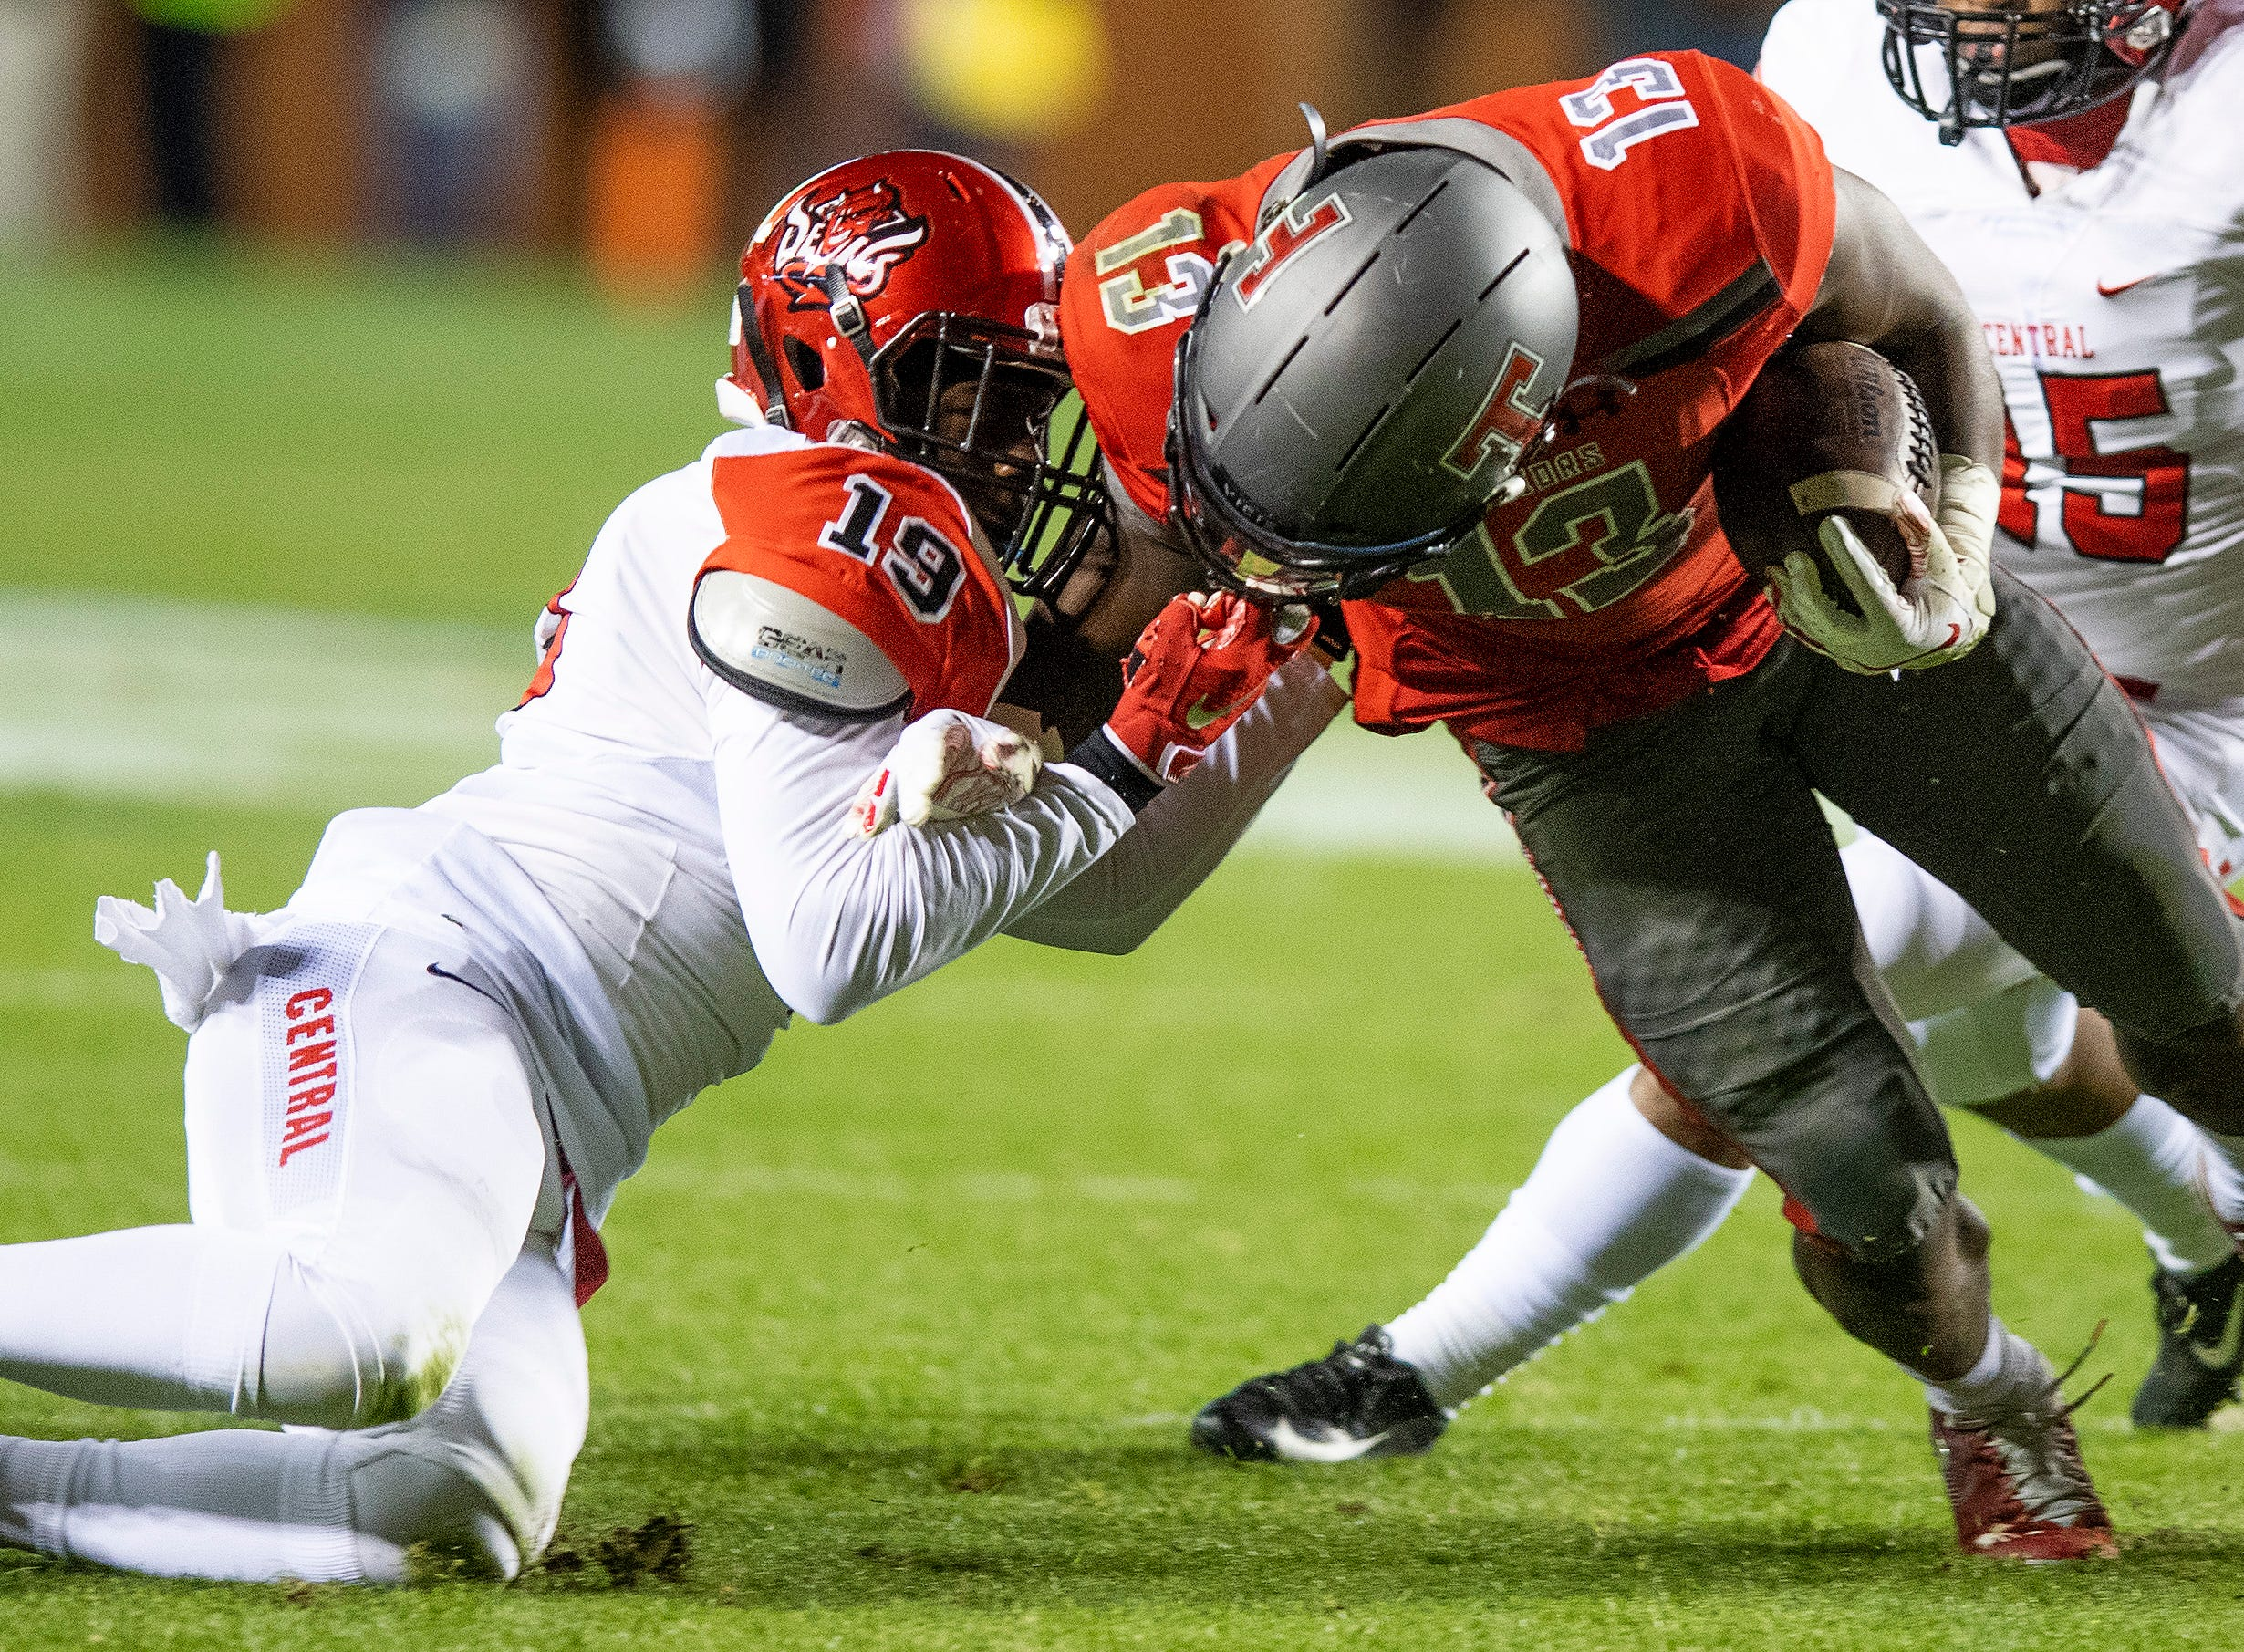 Central-Phenix City's Terrell Covington facemarks Thompson's Shadrick Byrd during the AHSAA Class 7A State Championship Football Game at Jordan Hare Stadium in Auburn, Ala., on Wednesday evening December 5, 2018.